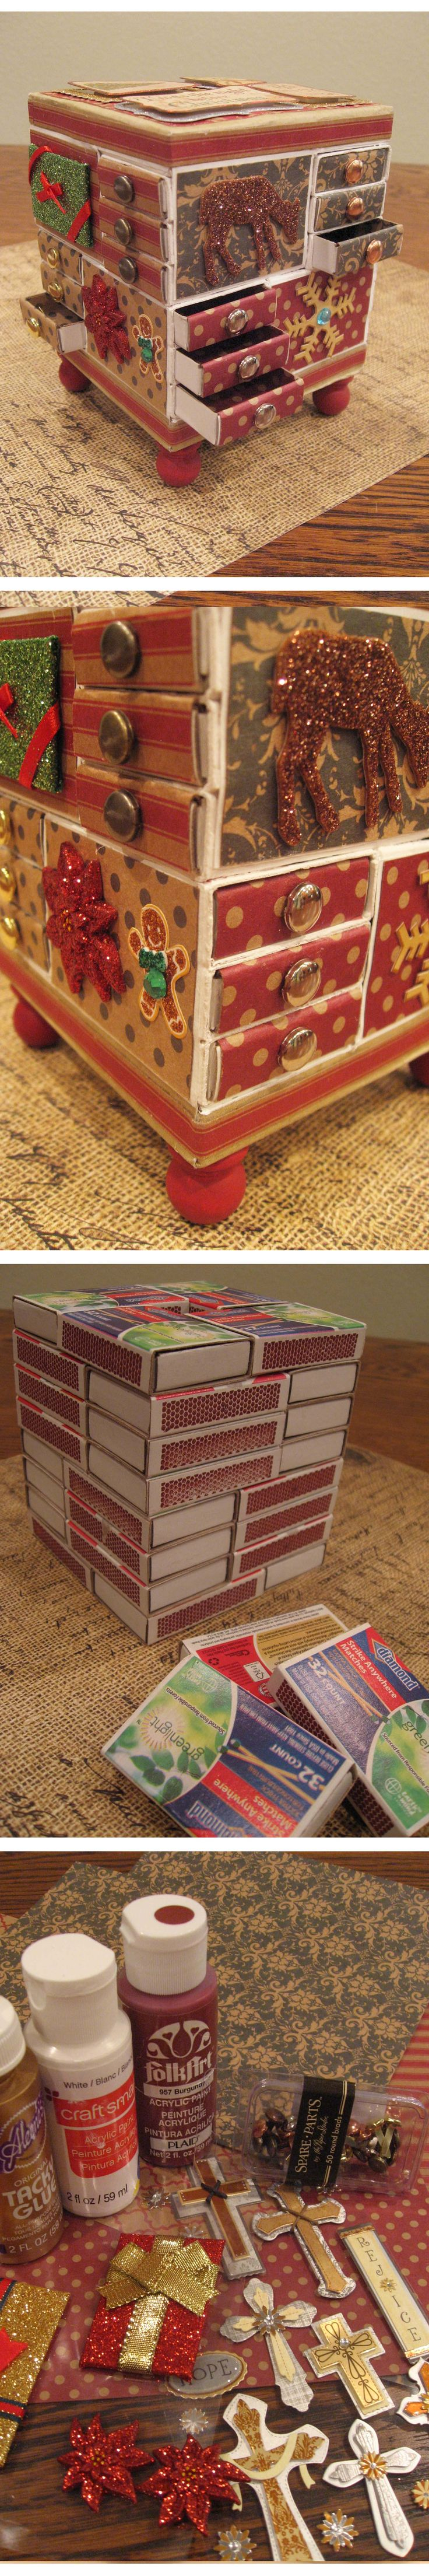 Scrapbook ideas without photos - Christmas Advent Box Made From Matchboxes Decorative Paper Brads Paint And Scrapbook